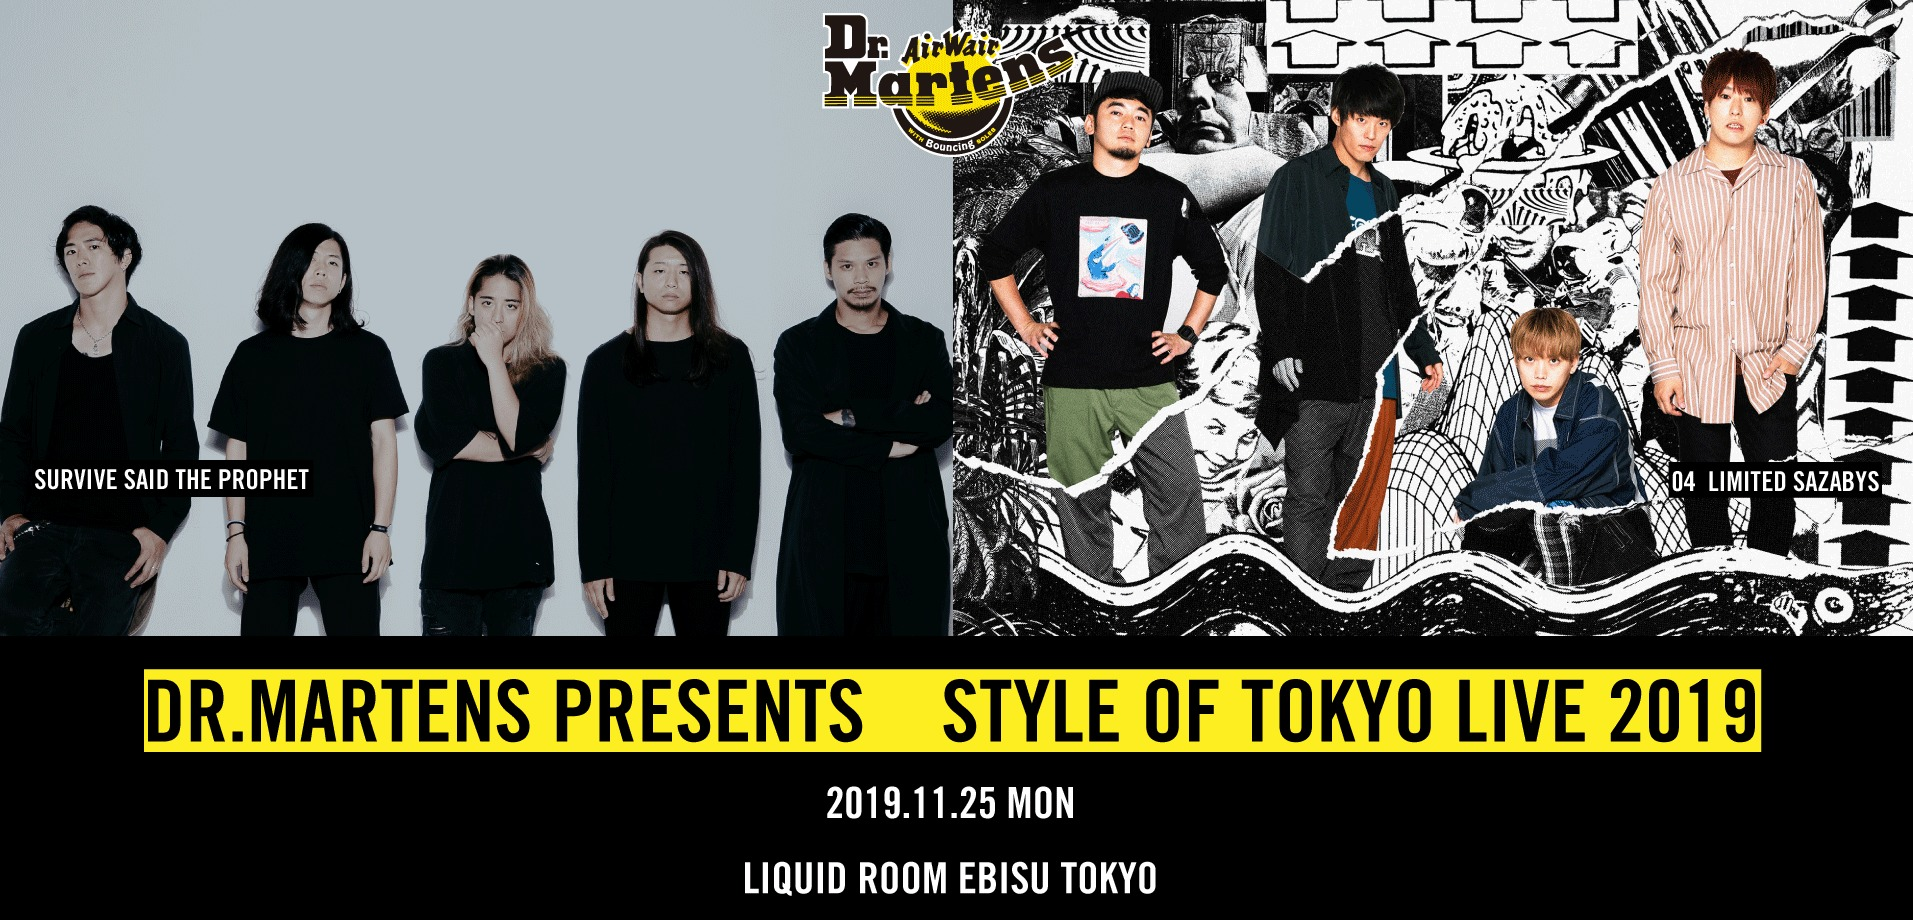 『DR.MARTENS presents STYLE of TOKYO LIVE 2019』